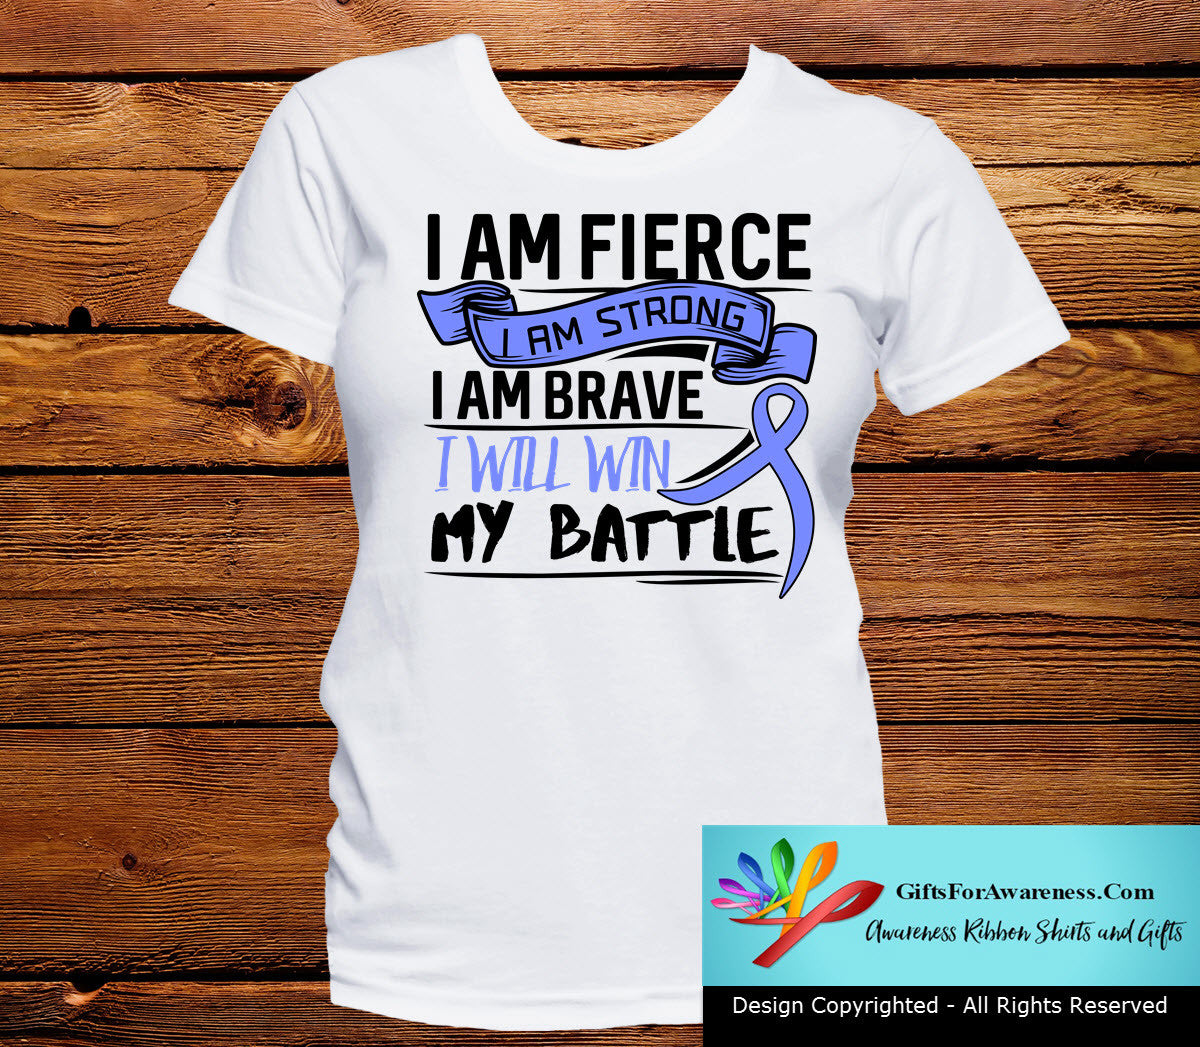 Stomach Cancer I Am Fierce Strong and Brave Shirts - GiftsForAwareness